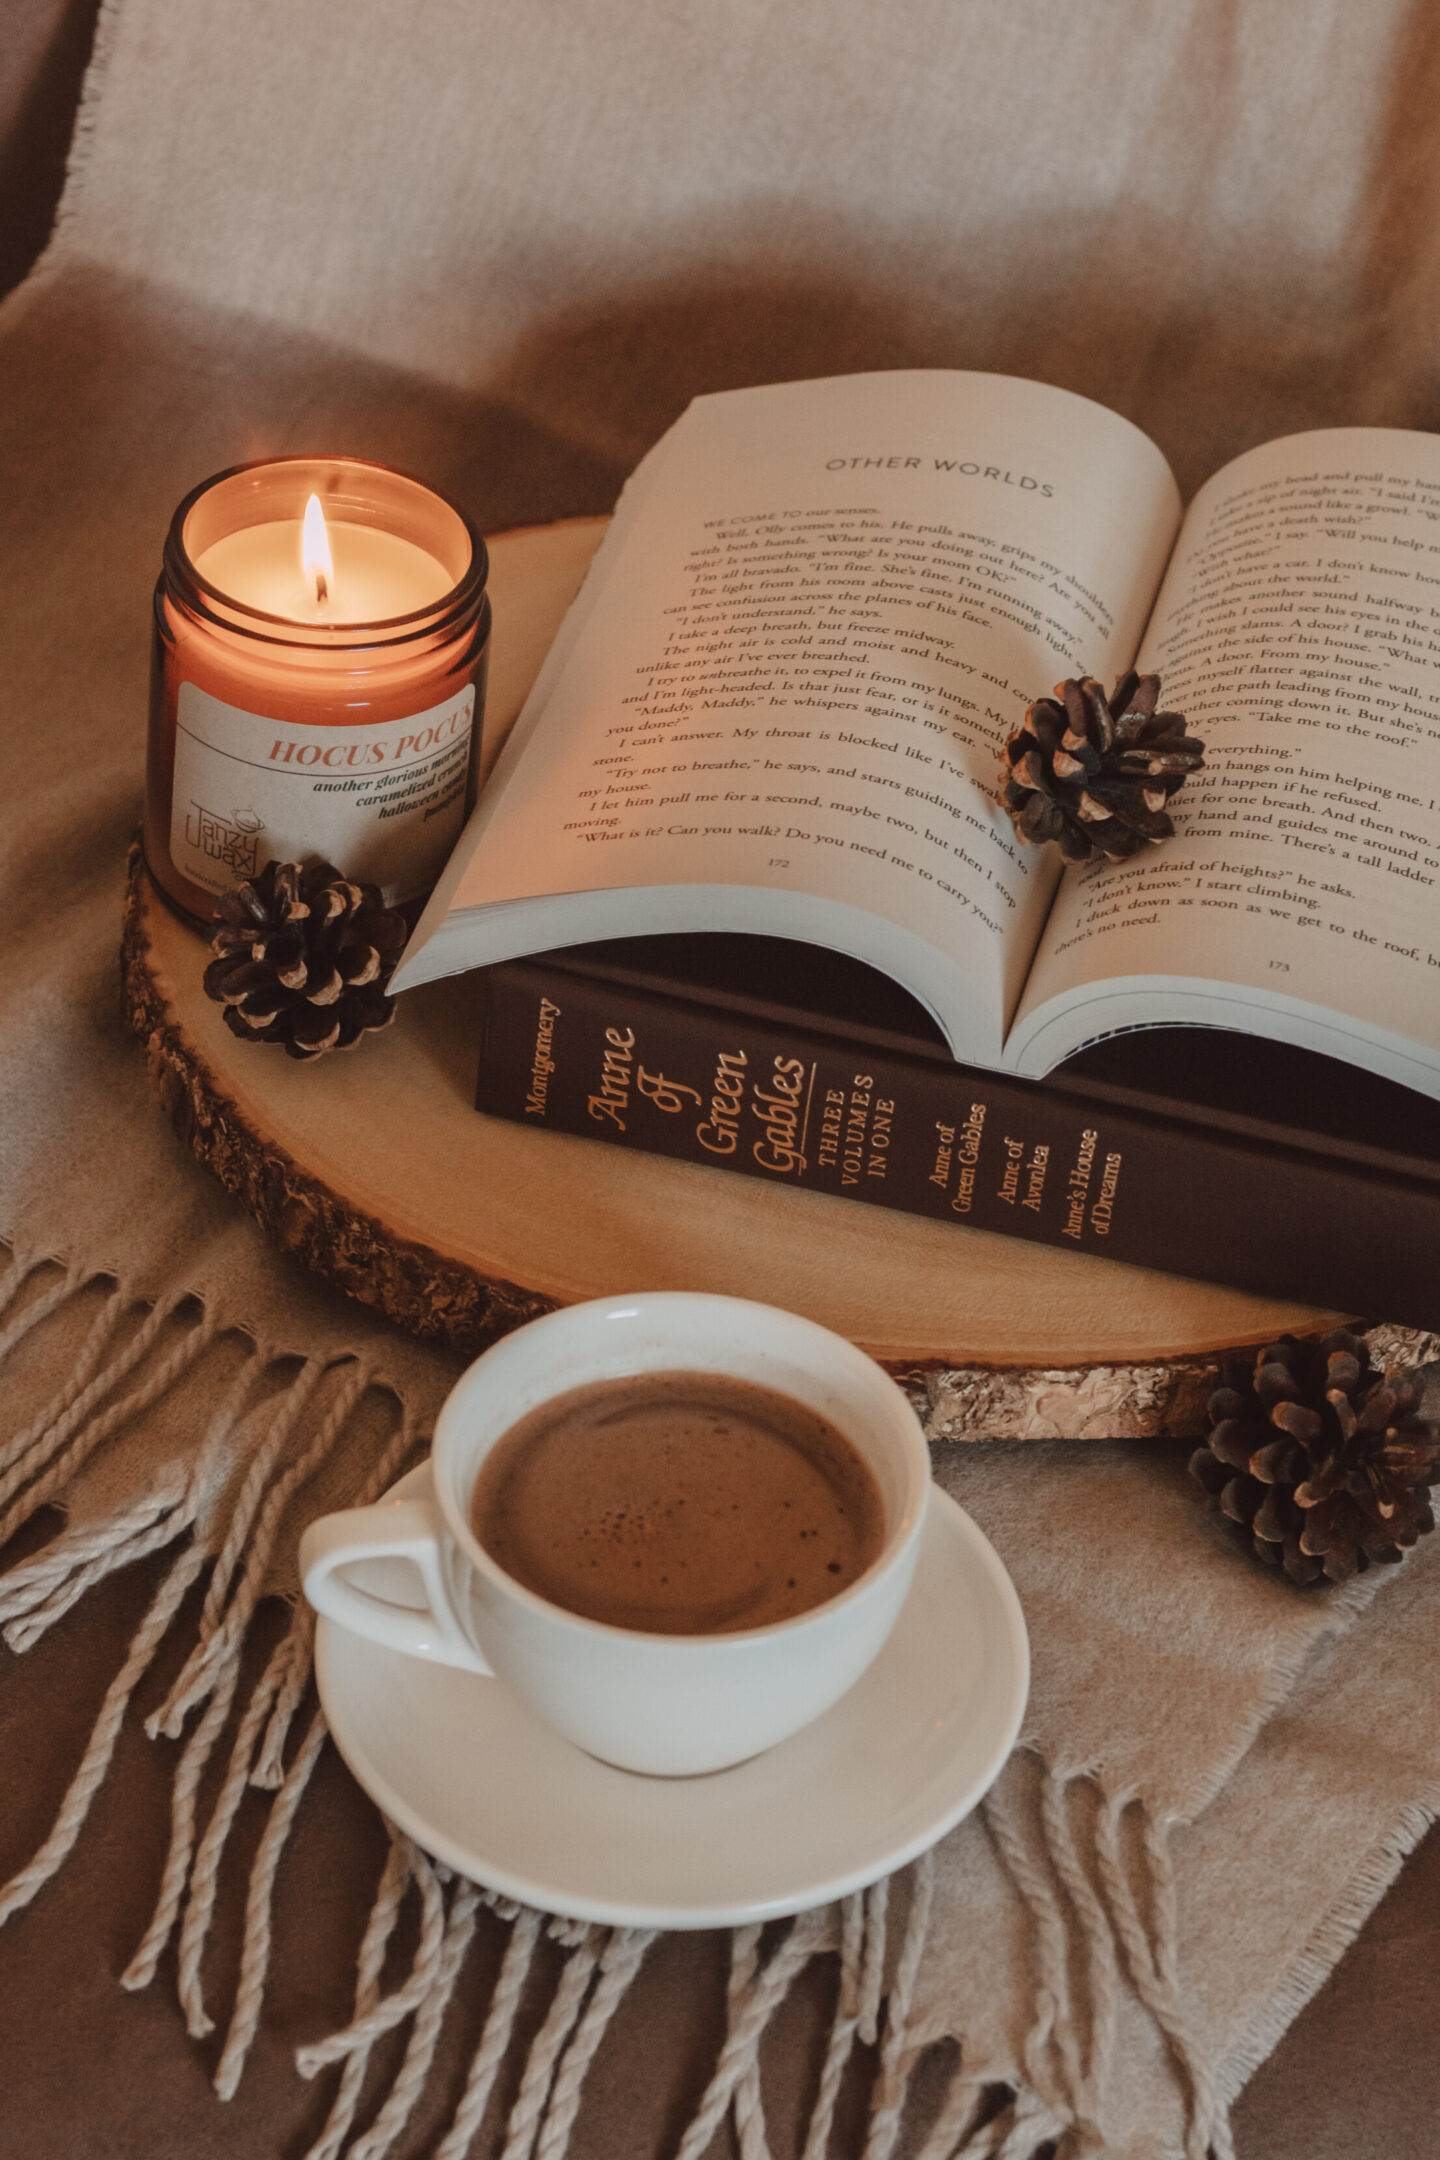 mug of swirling mocha sitting next to two books on top of a wooden board next to a lit candle